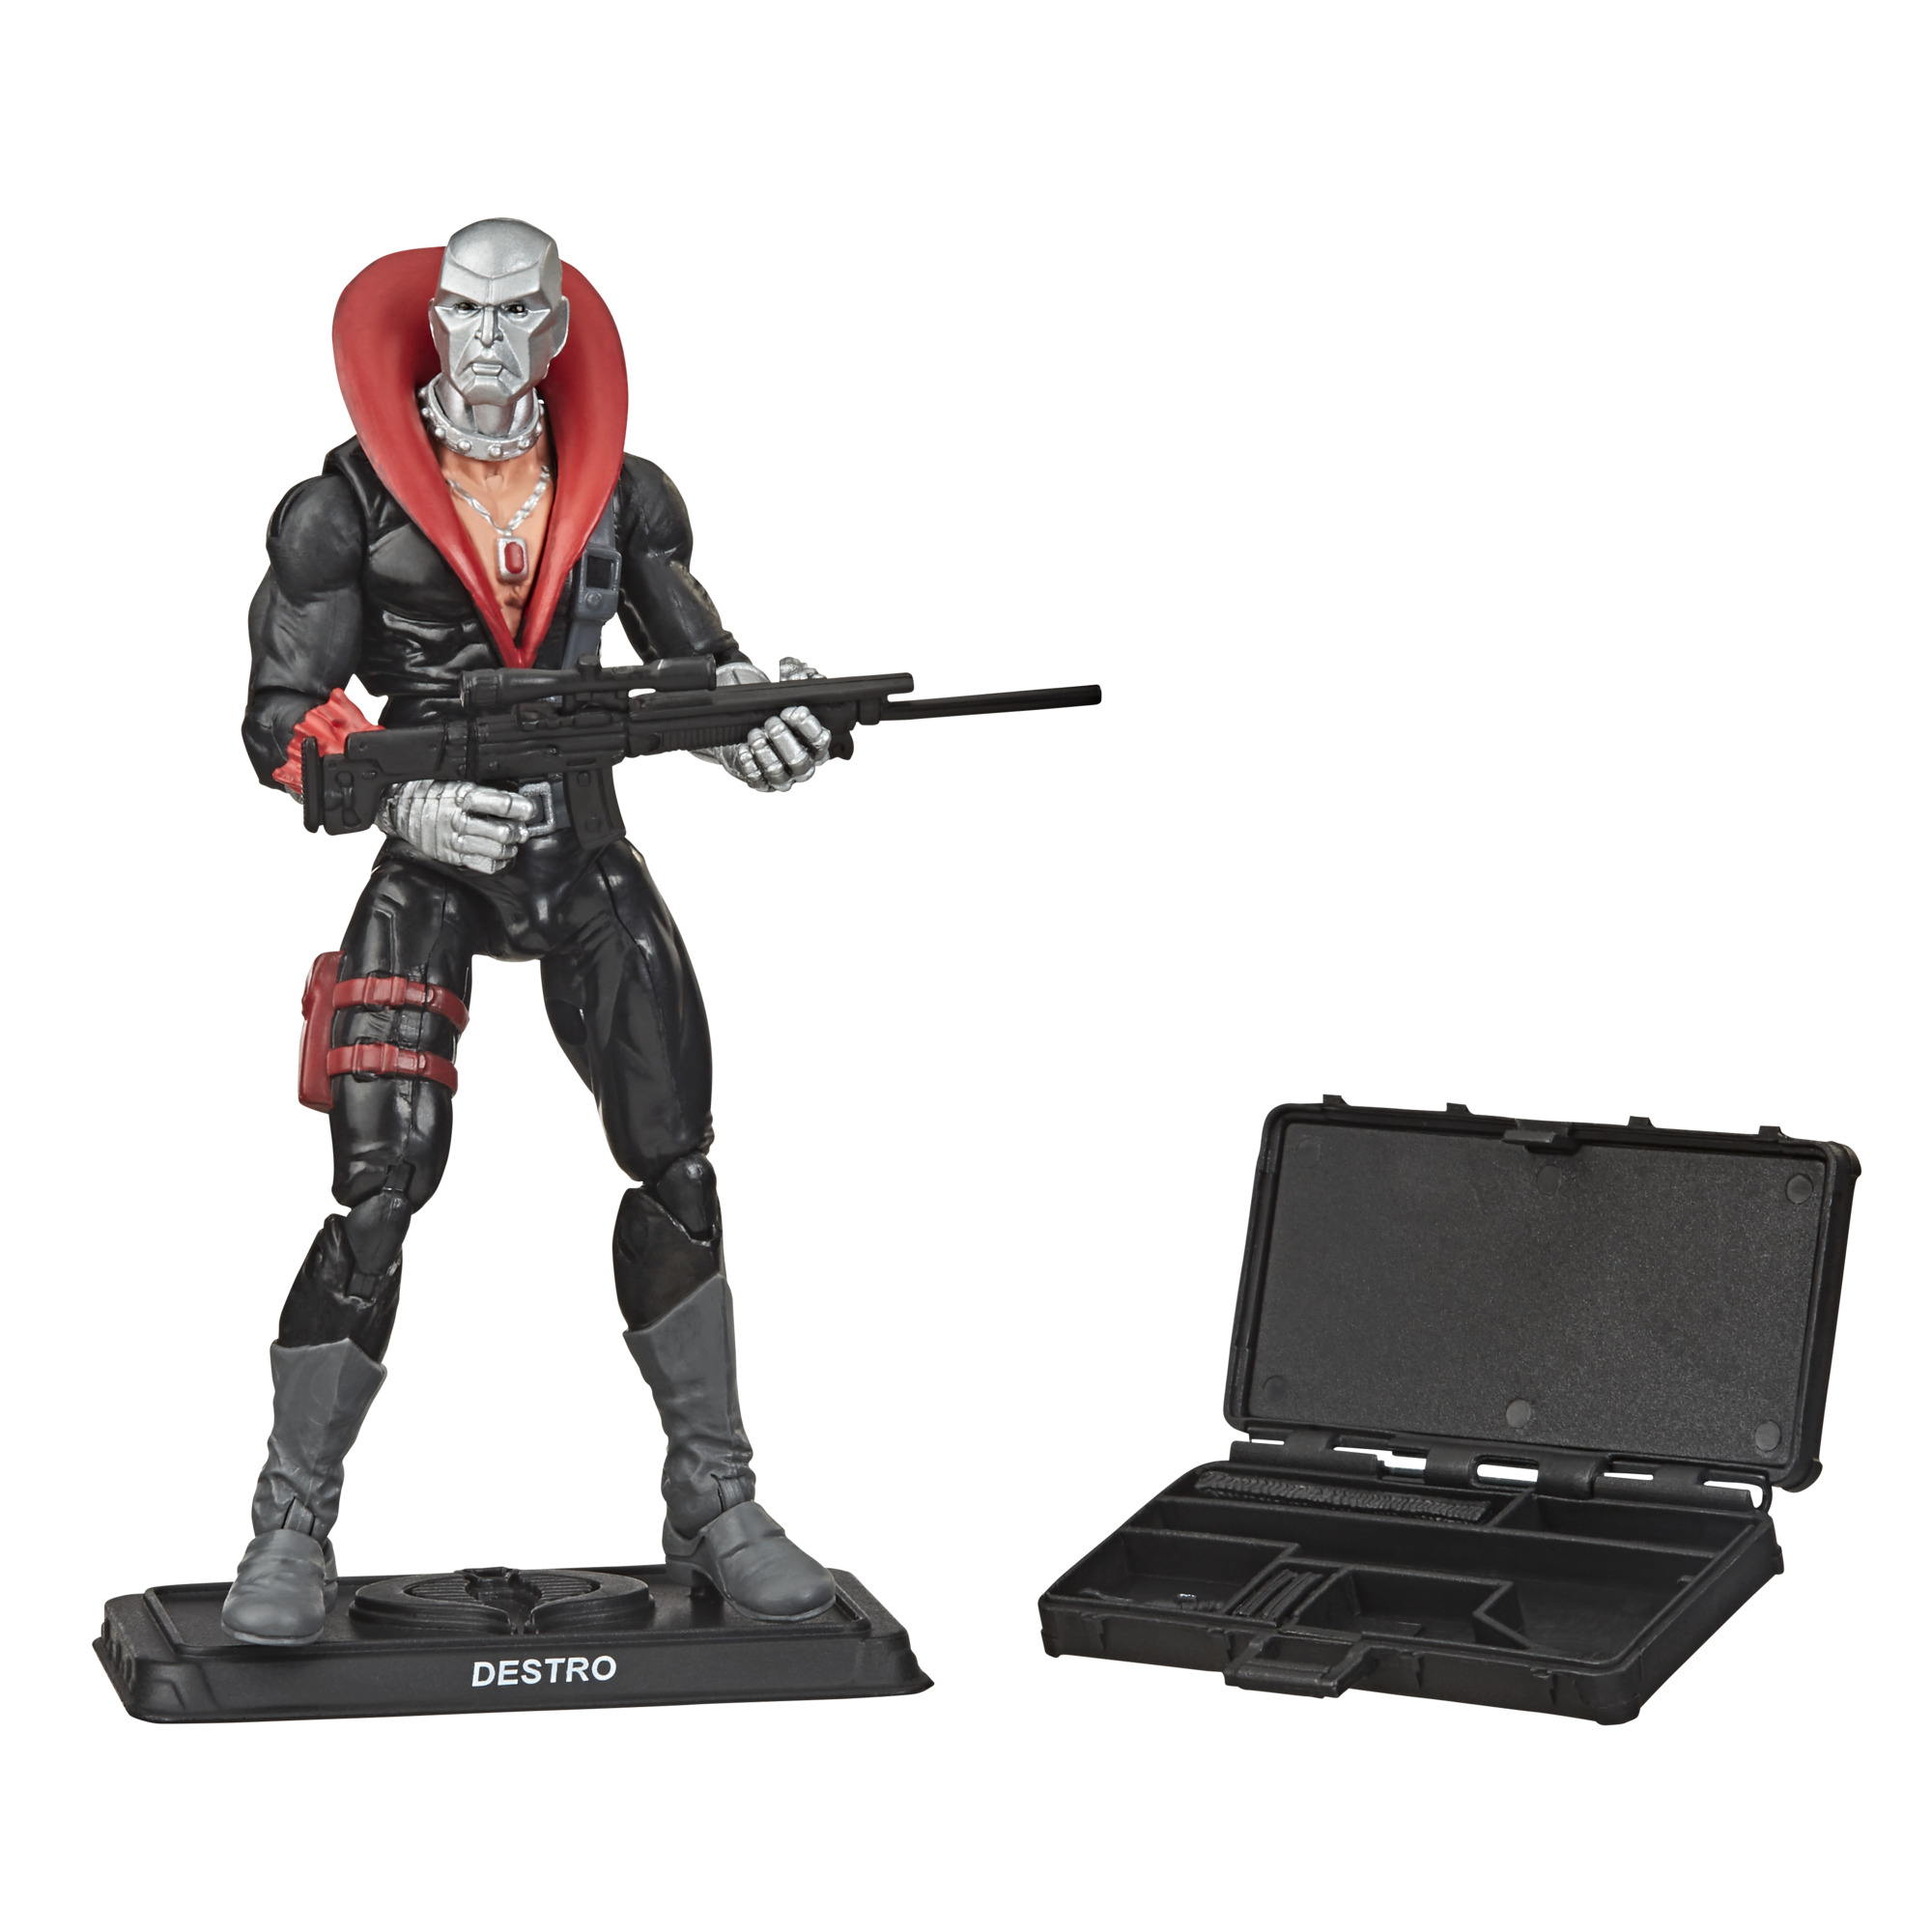 G.I. Joe Retro Collection Destro Collectible Action Figure